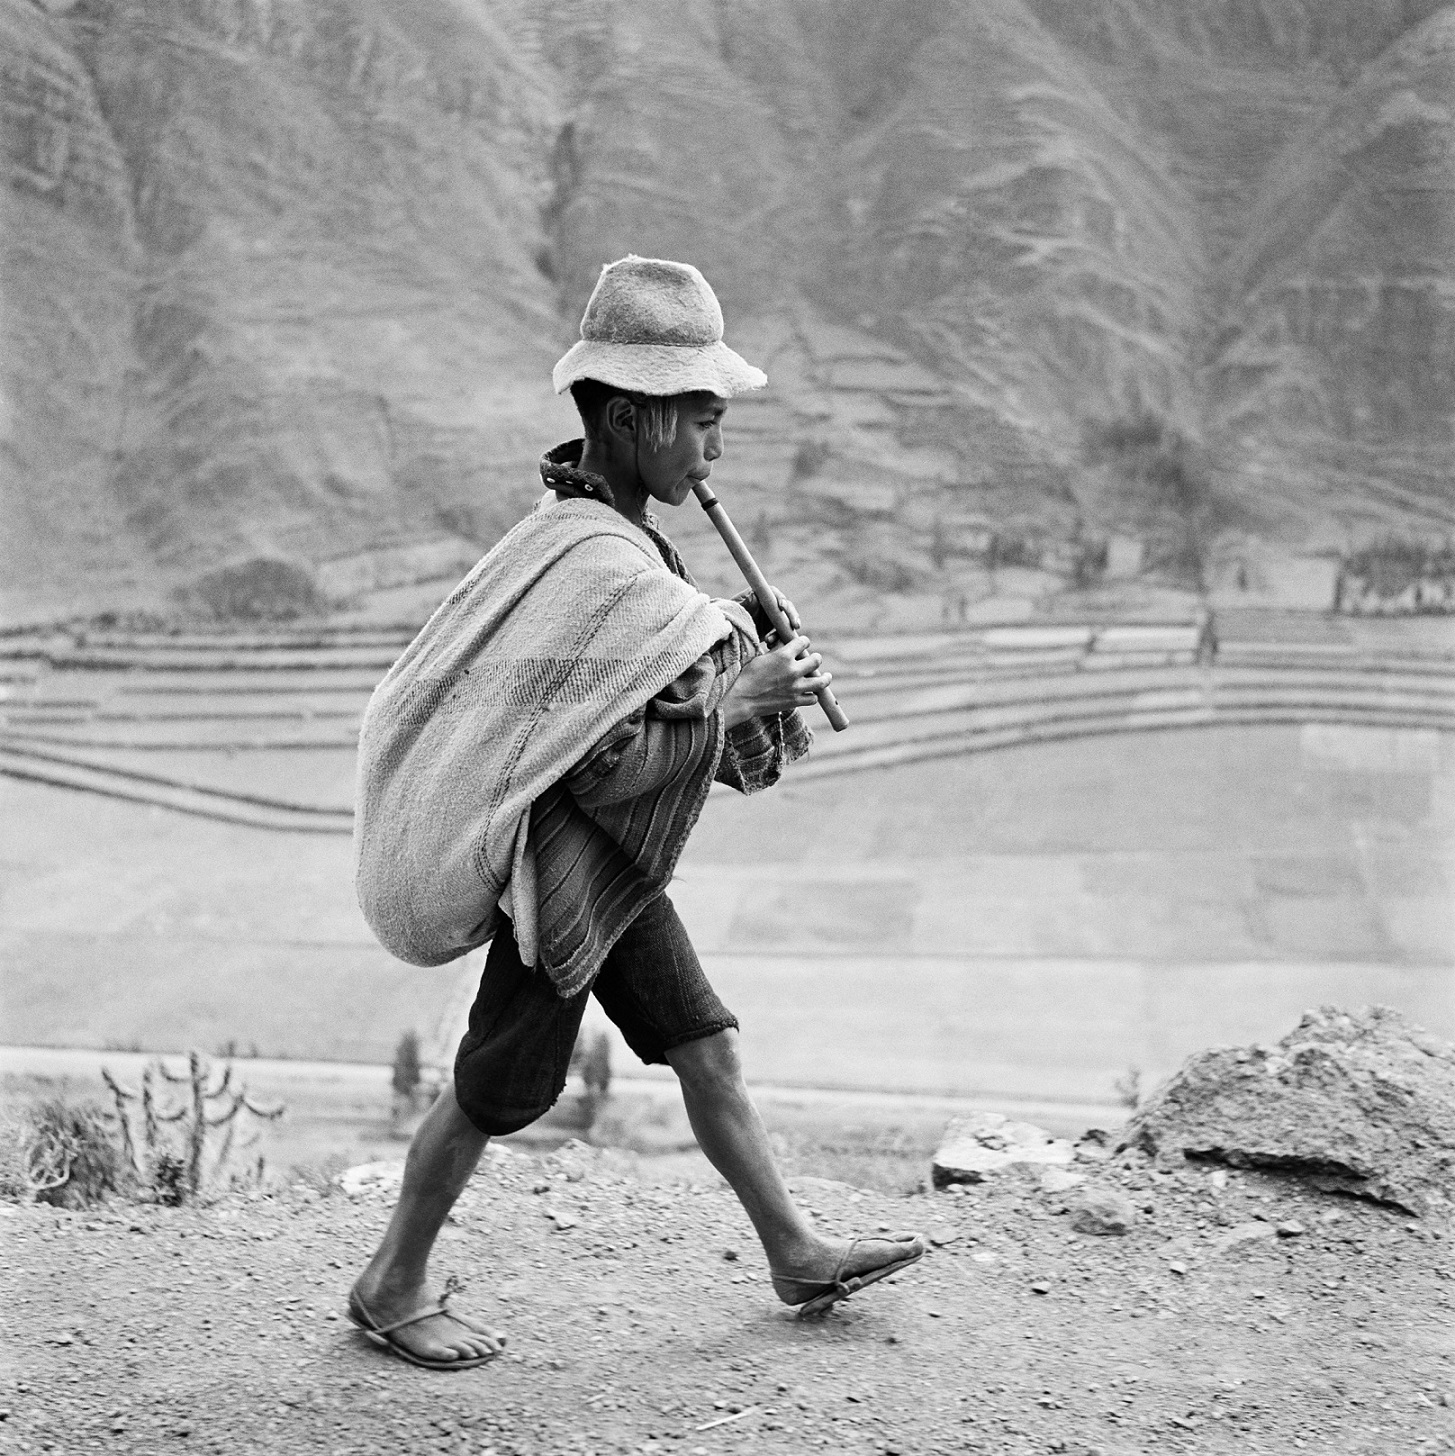 PERU. May 1954. On the road to Cuzco, near Pisac, in the Valle Sagrado of the Urubamba